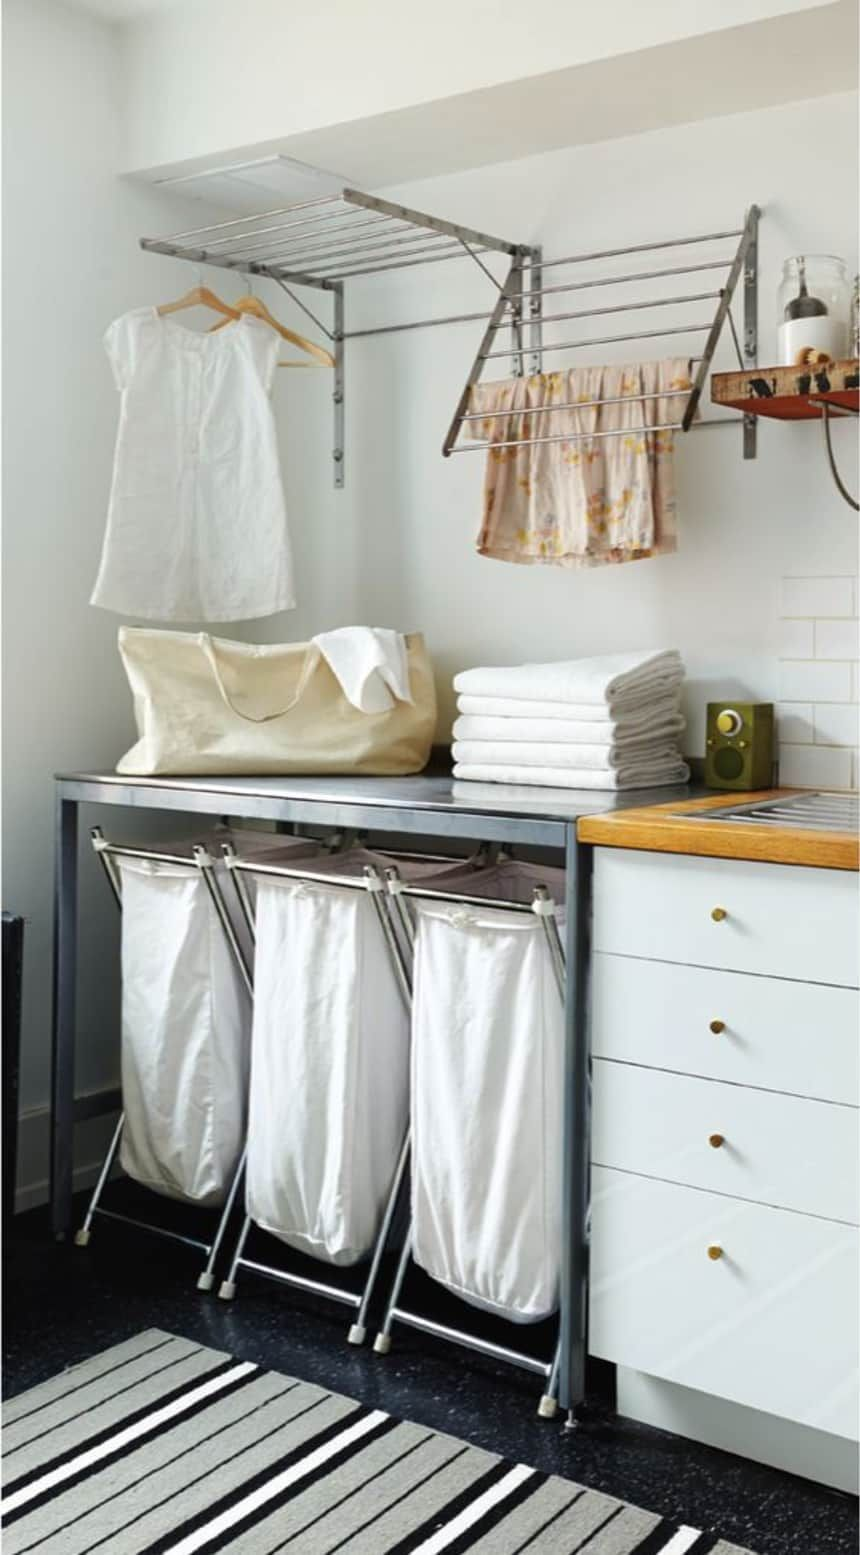 10 great modern farmhouse small laundry room ideas on extraordinary small laundry room design and decorating ideas modest laundry space id=56347